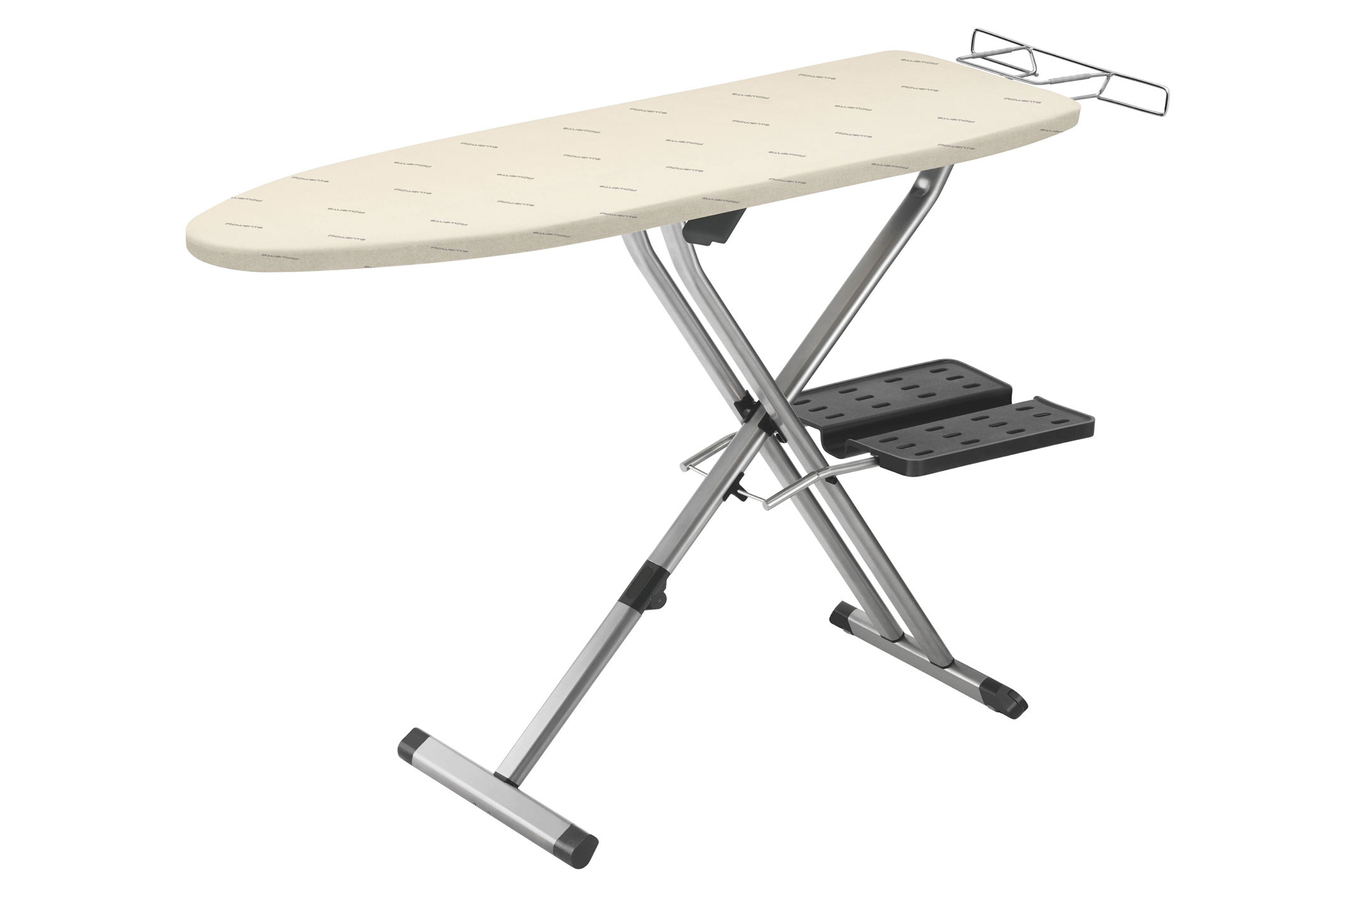 Table a repasser rowenta ib9100d1 pro compact procompact 3713407 darty - Table jardin pliante ikea roubaix ...